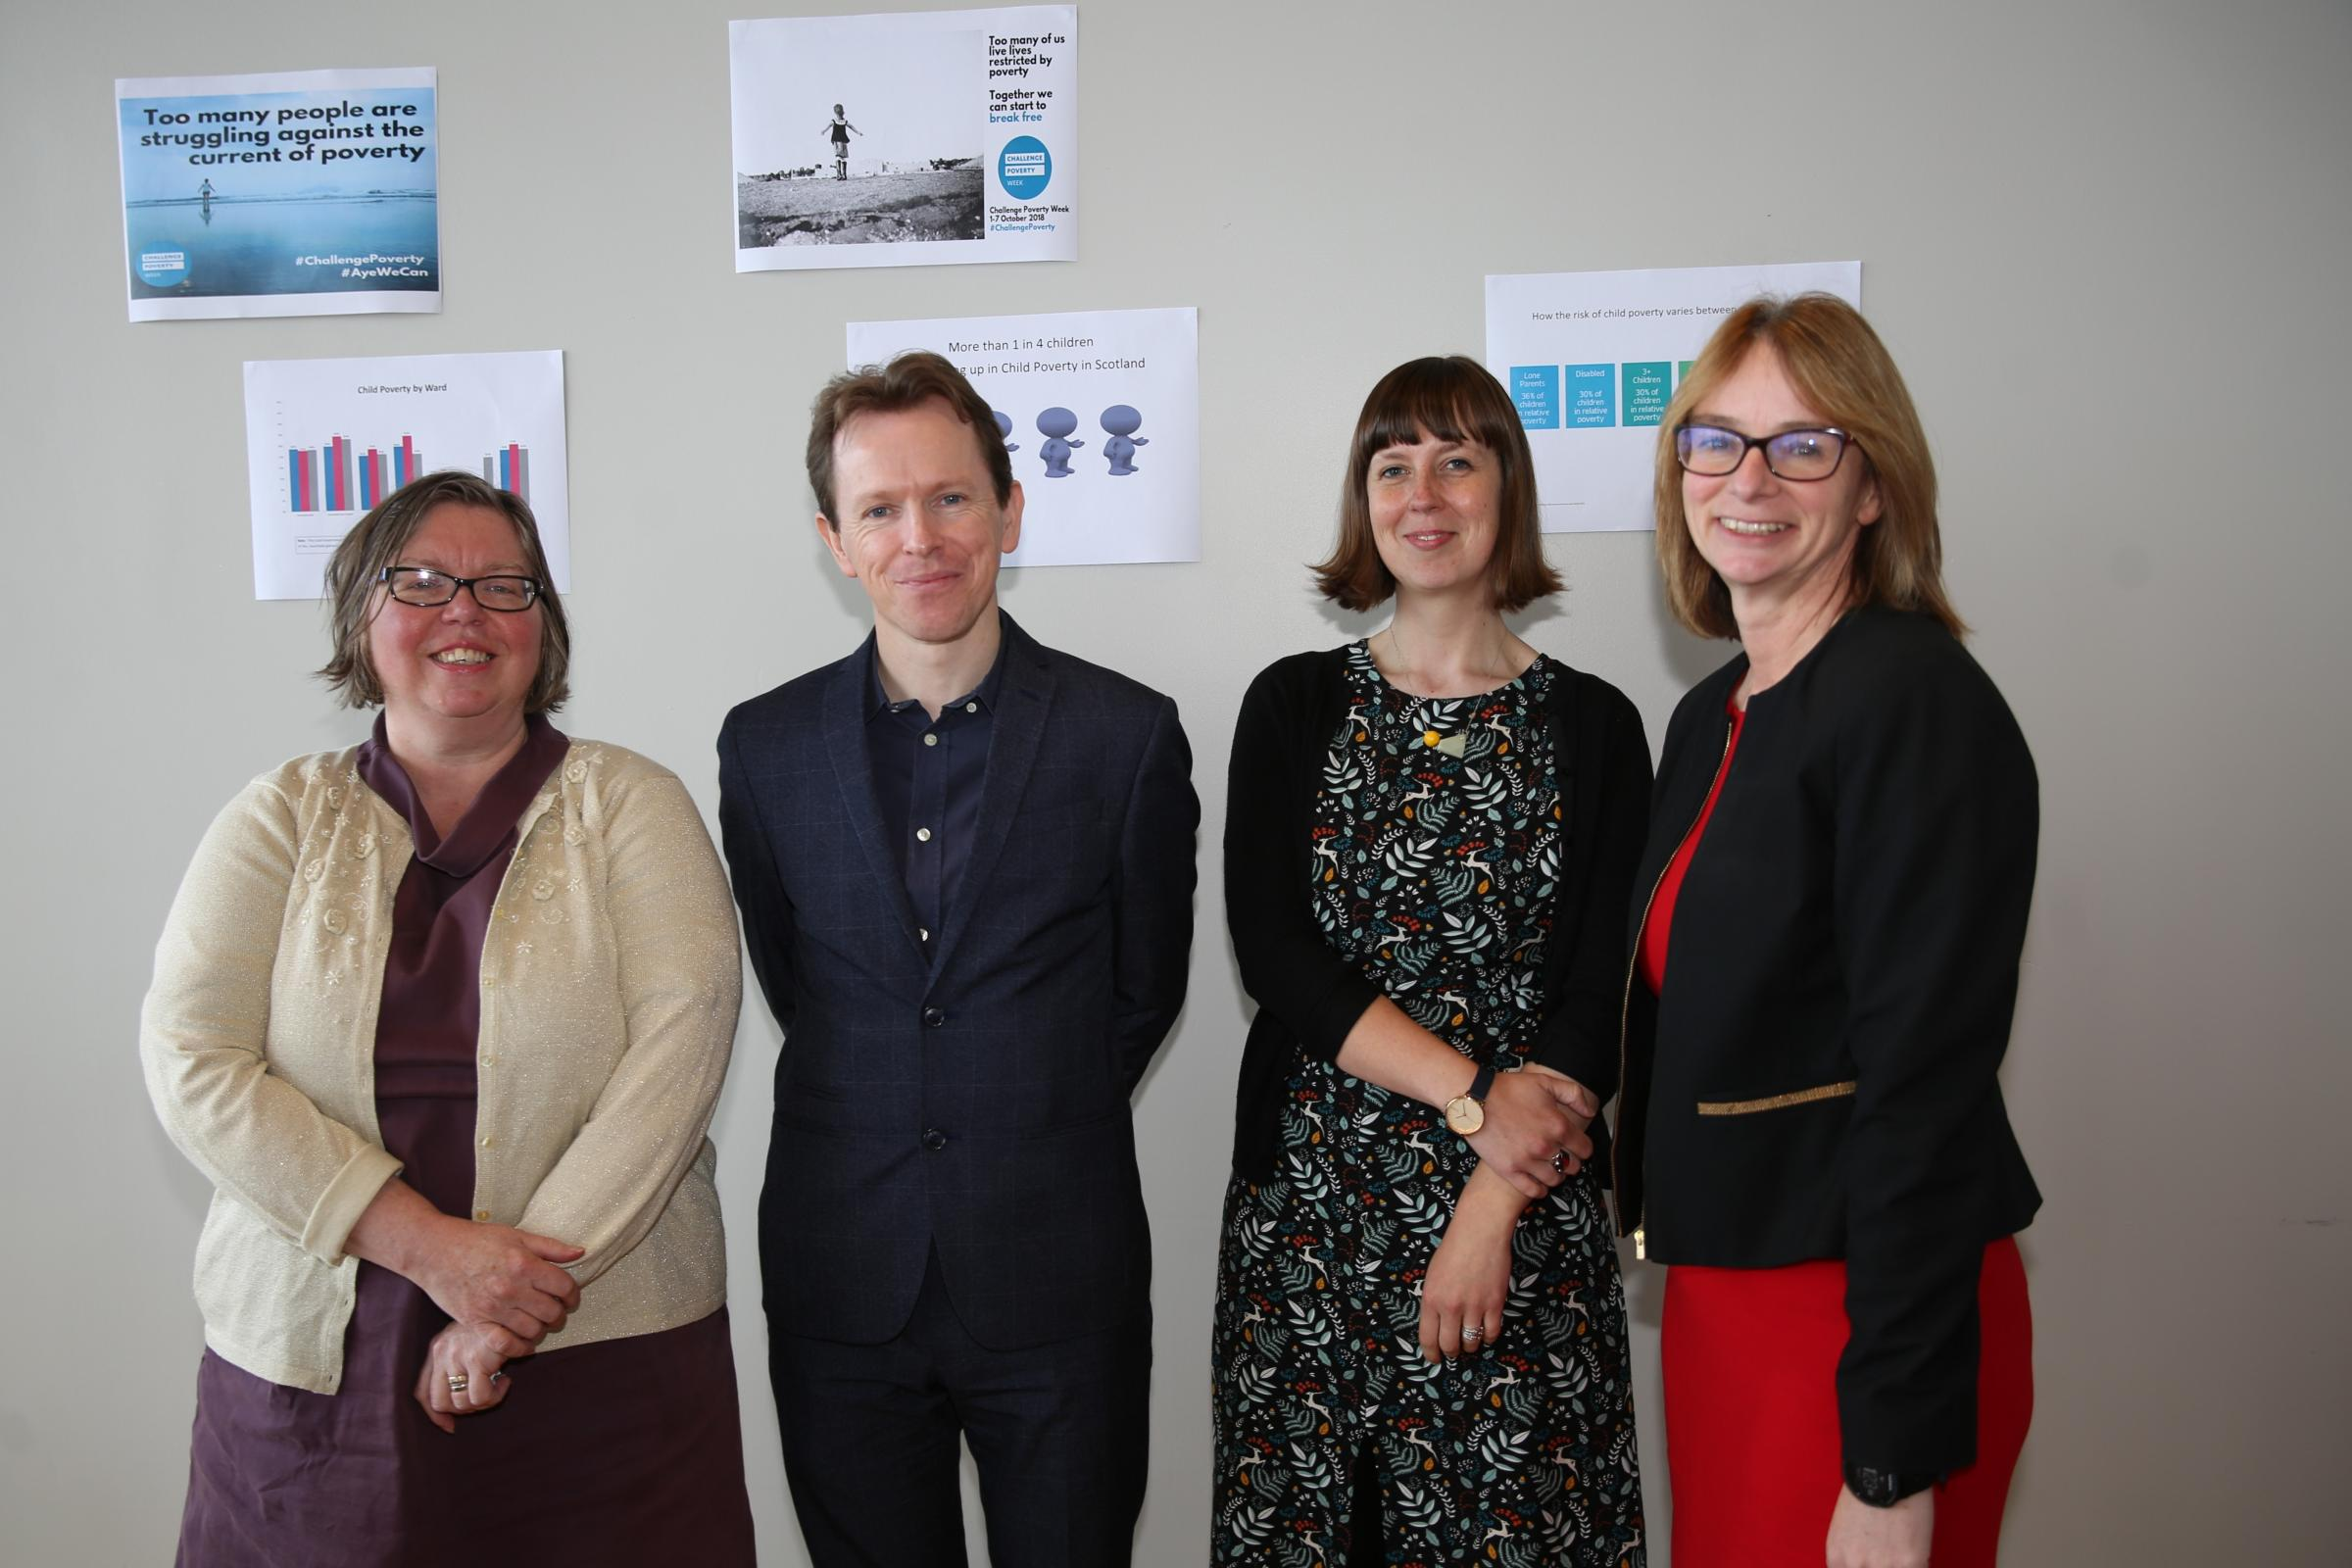 End Child Poverty conference at Beacon Arts Centre in Greenock. From left, keynote speakers: Dr Rosie Ilett, Glasgow child poverty co-ordinator, Child Poverty Action Group (CPAG) in Scotland; Dr Stephen Sinclair, Scottish Poverty and Inequality Research U